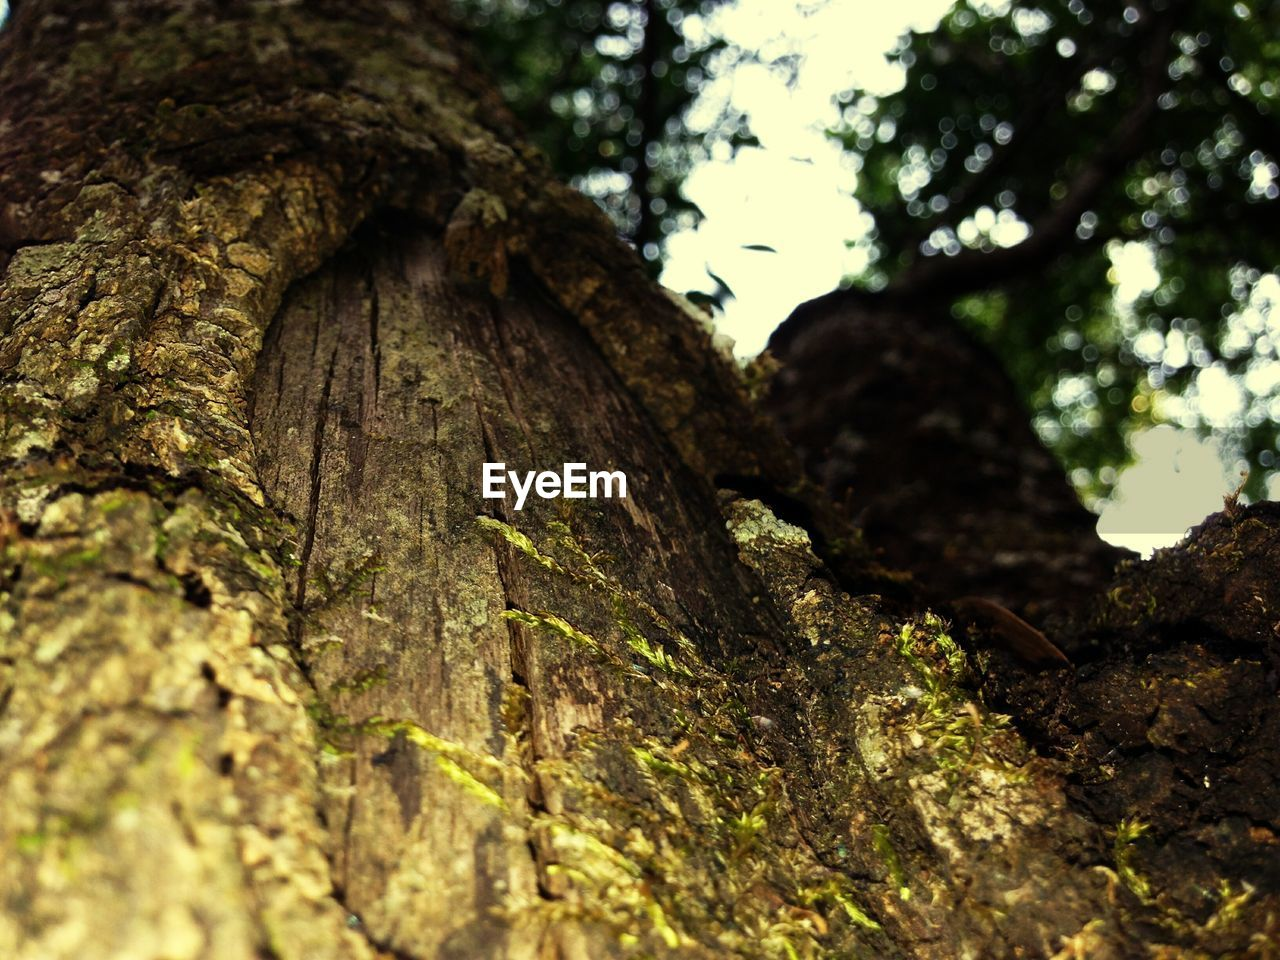 tree trunk, tree, textured, bark, rough, nature, growth, day, close-up, no people, outdoors, wood - material, low angle view, lichen, forest, fungus, beauty in nature